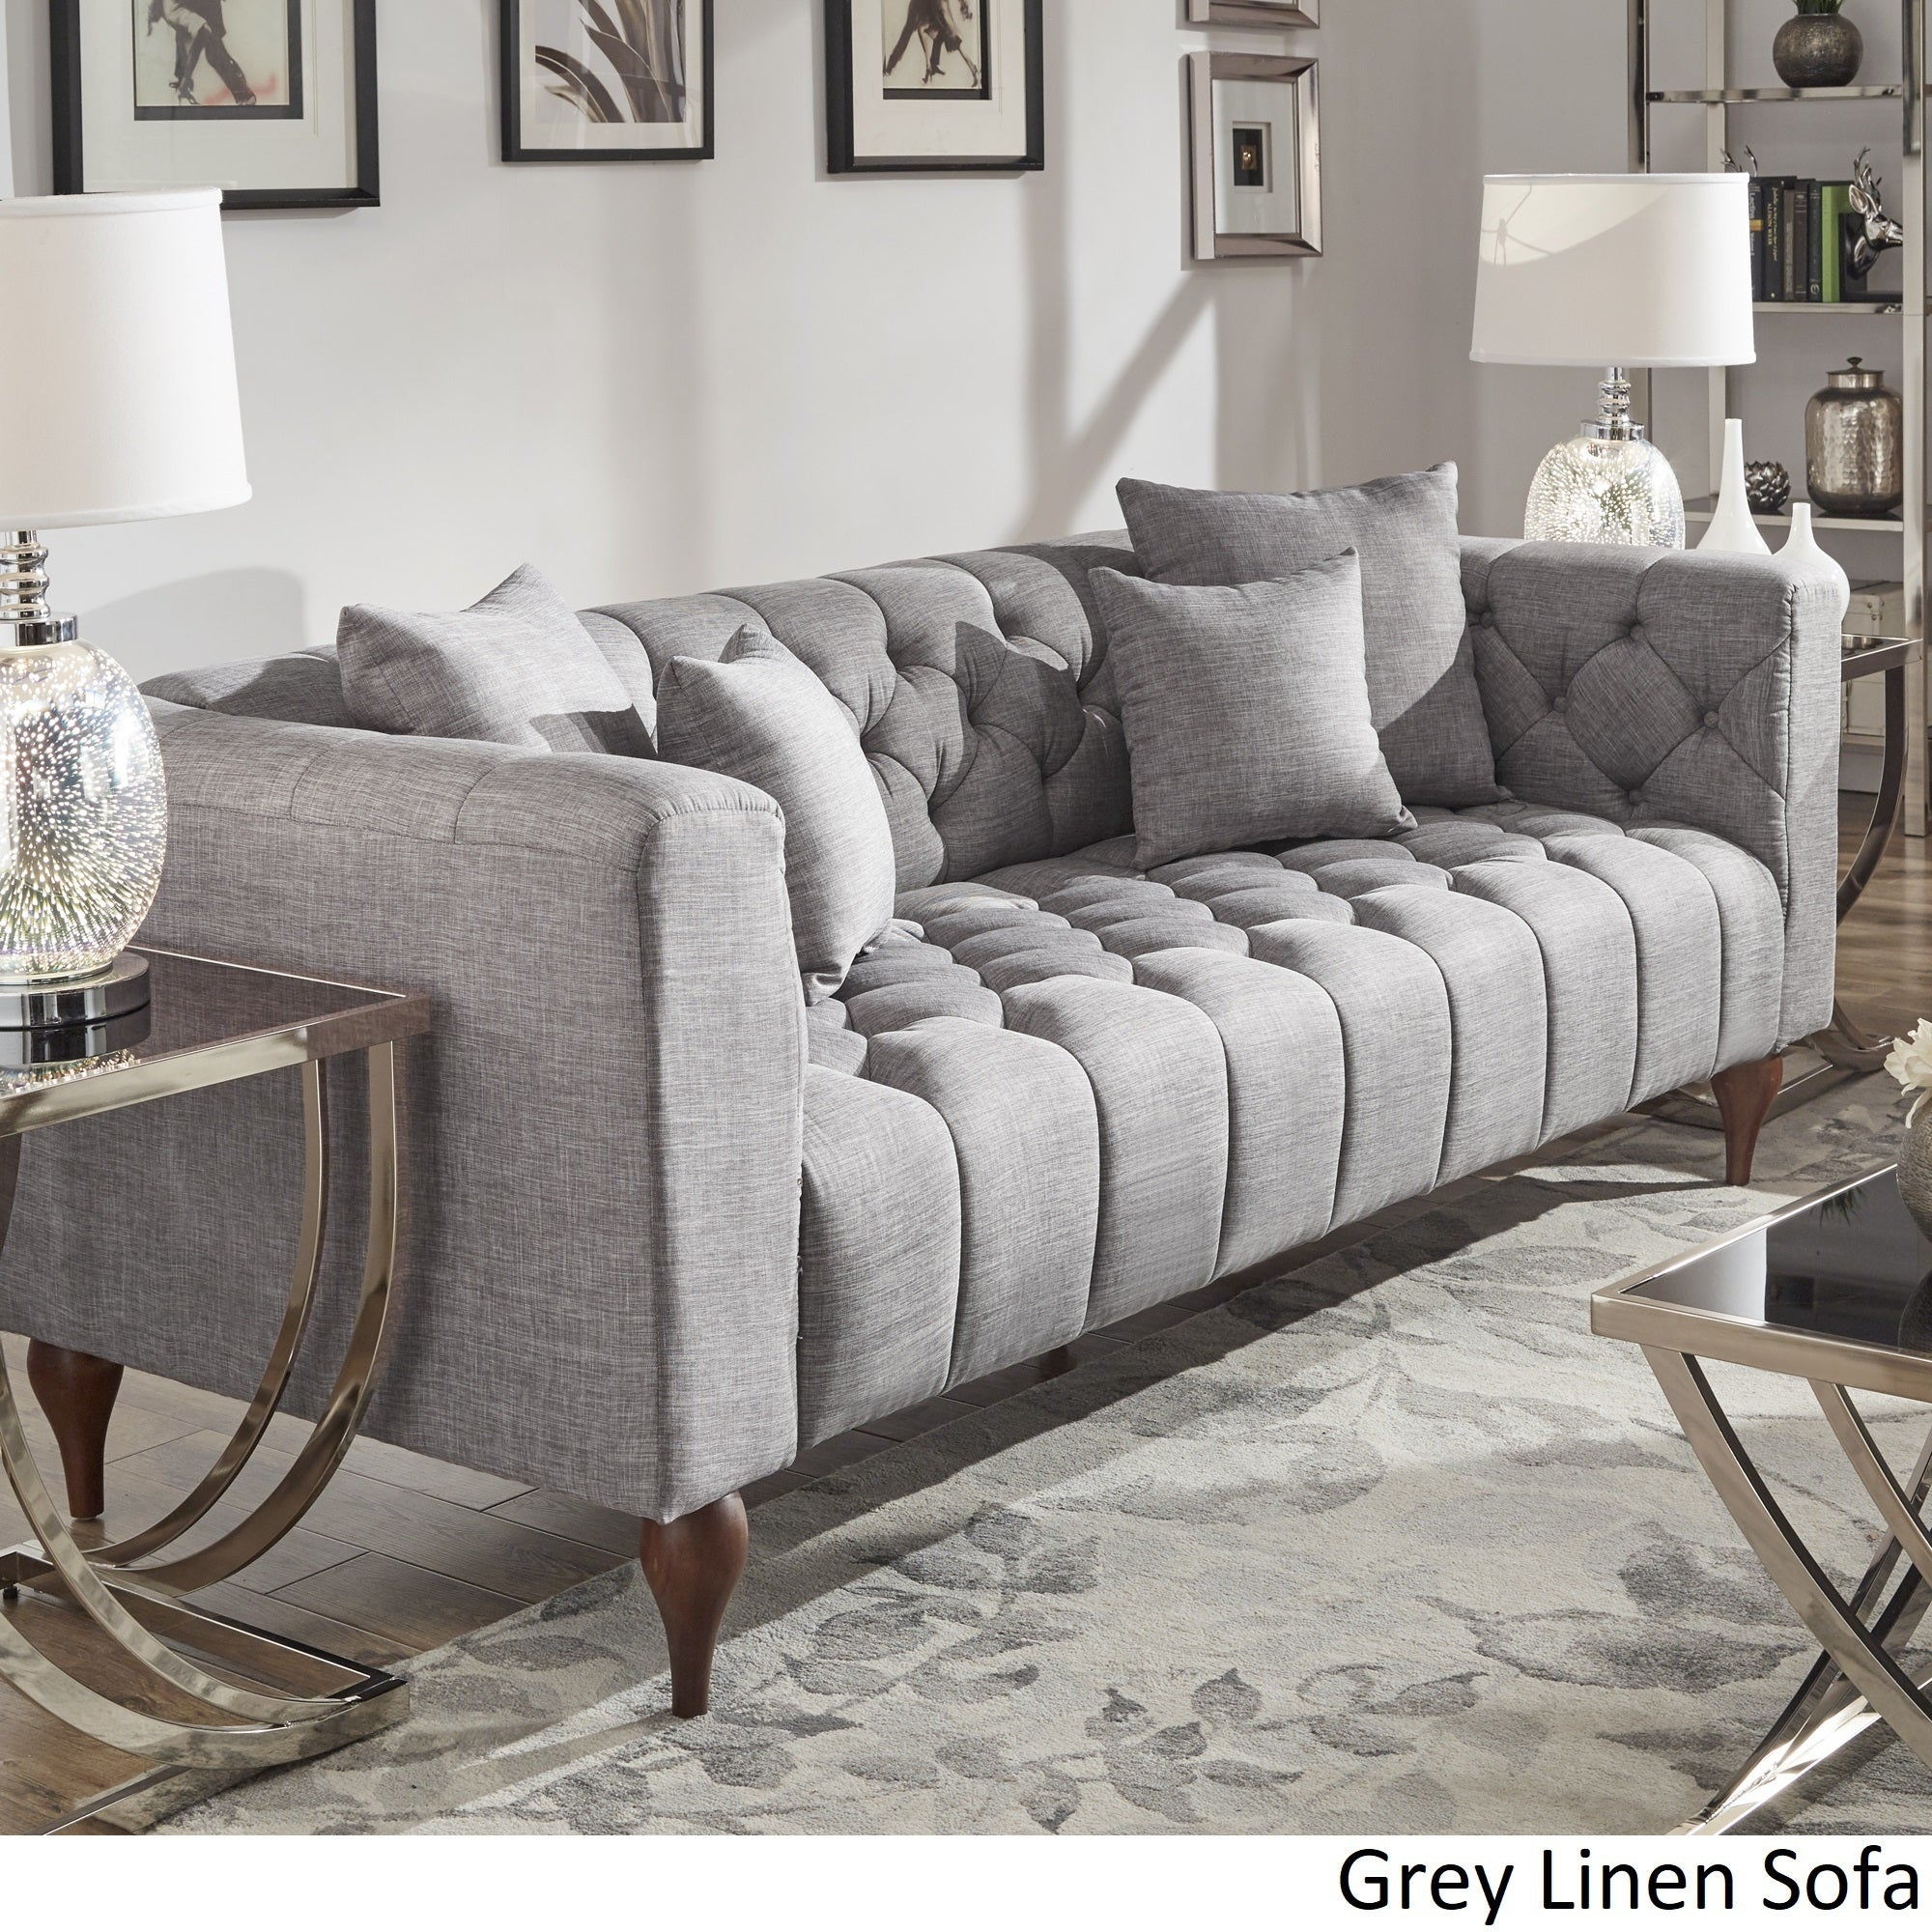 Shop Danise Tufted Linen Upholstered Tuxedo Arm Sofa By INSPIRE Q Artisan    Free Shipping Today   Overstock.com   22377378